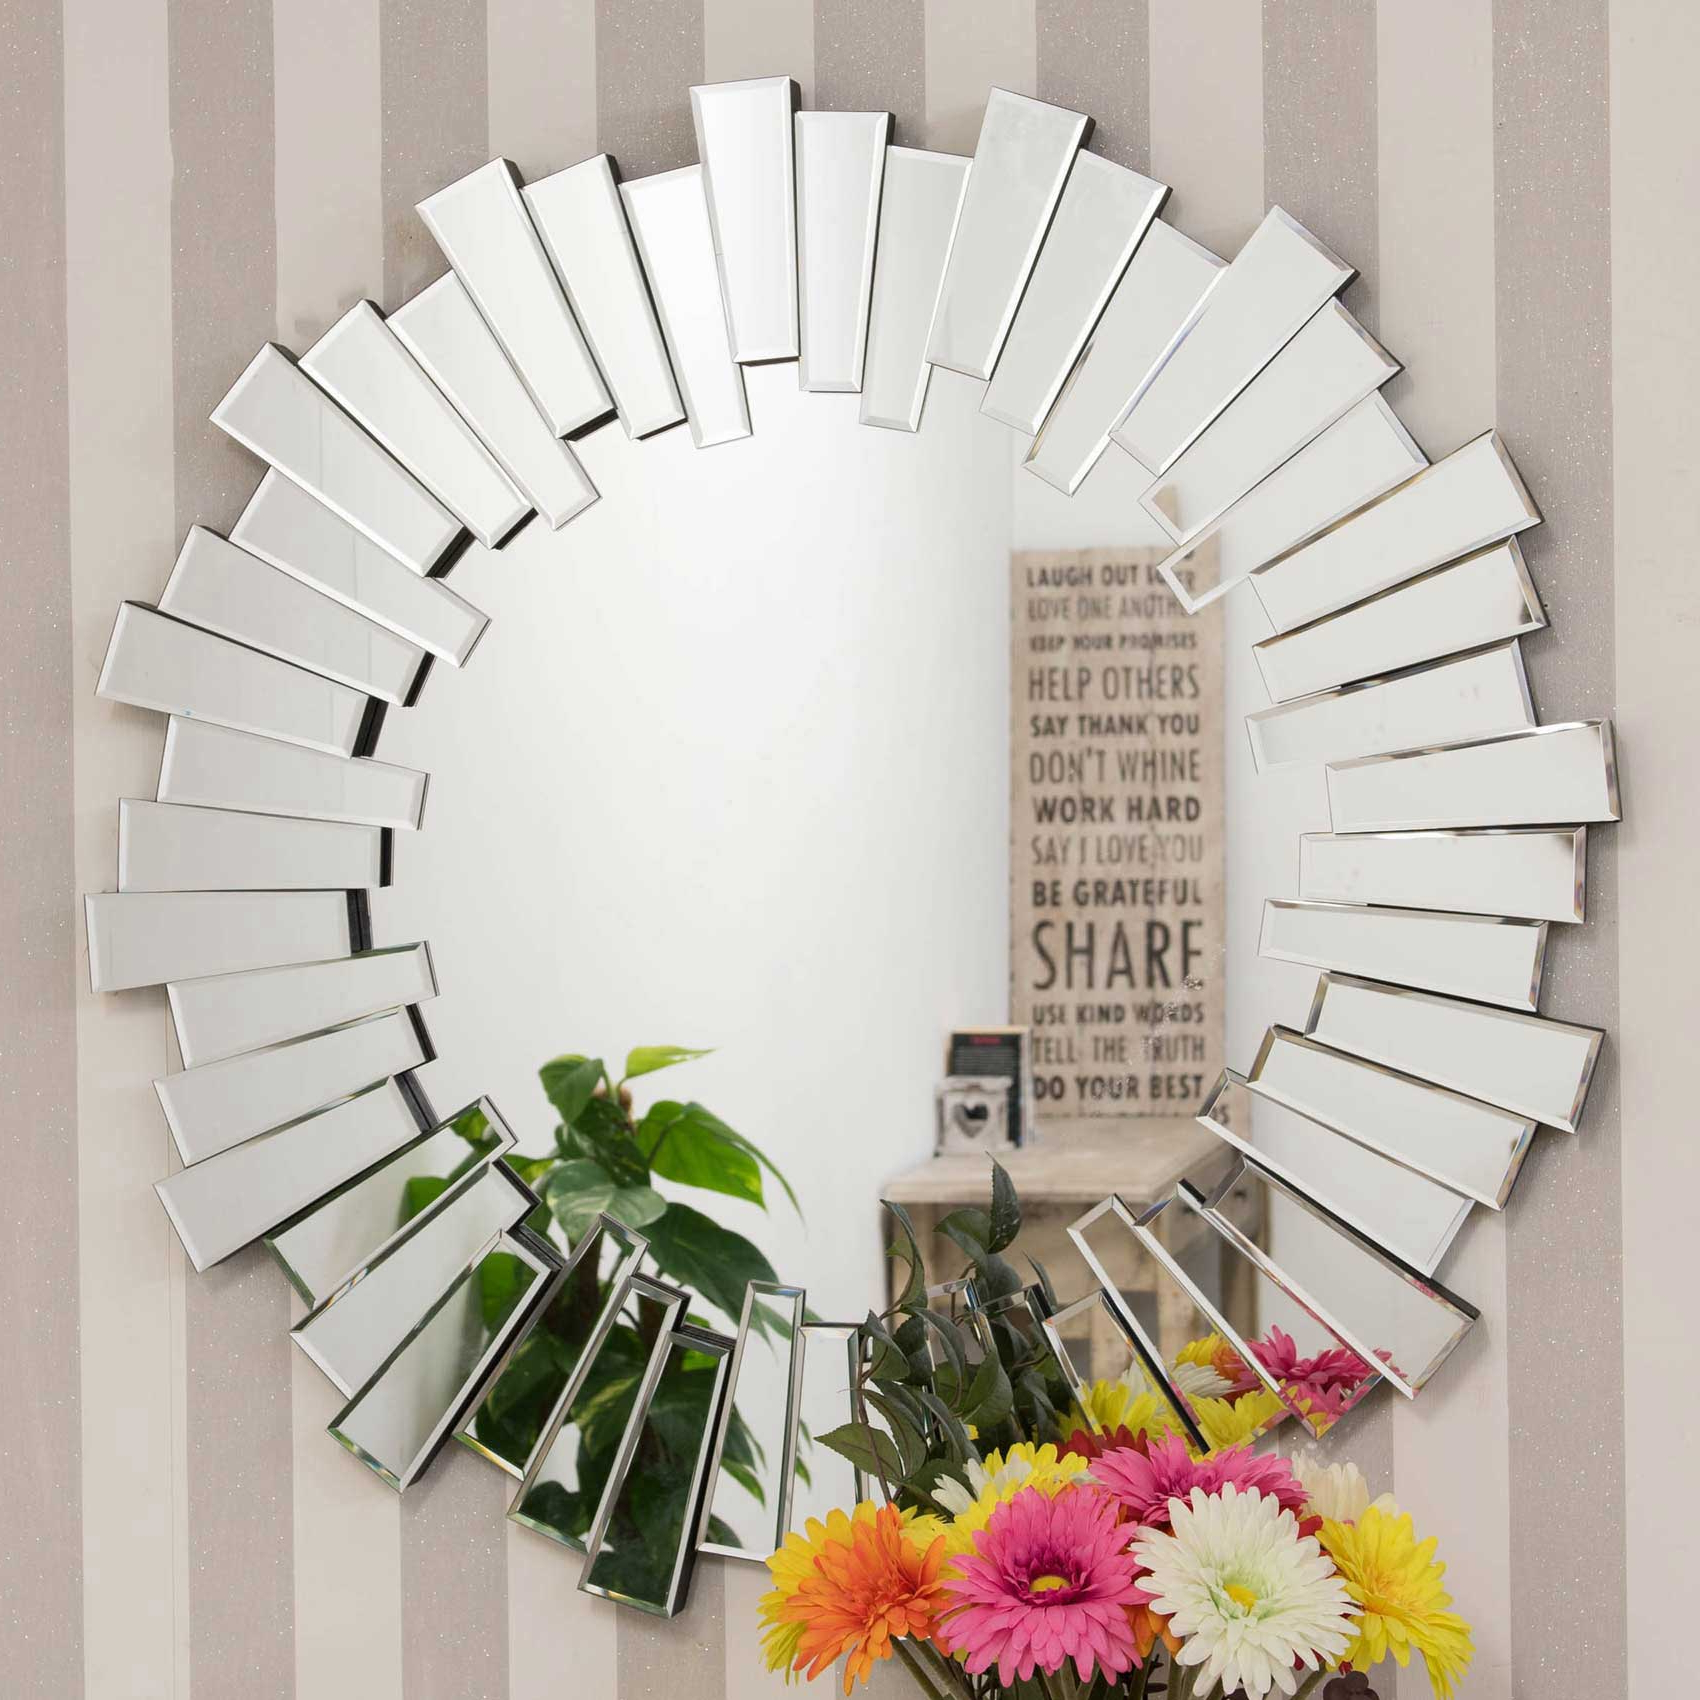 Latest Modern Round Sunburst Venetian Wall Mirror 90X90Cm Throughout Modern Round Wall Mirrors (View 8 of 20)